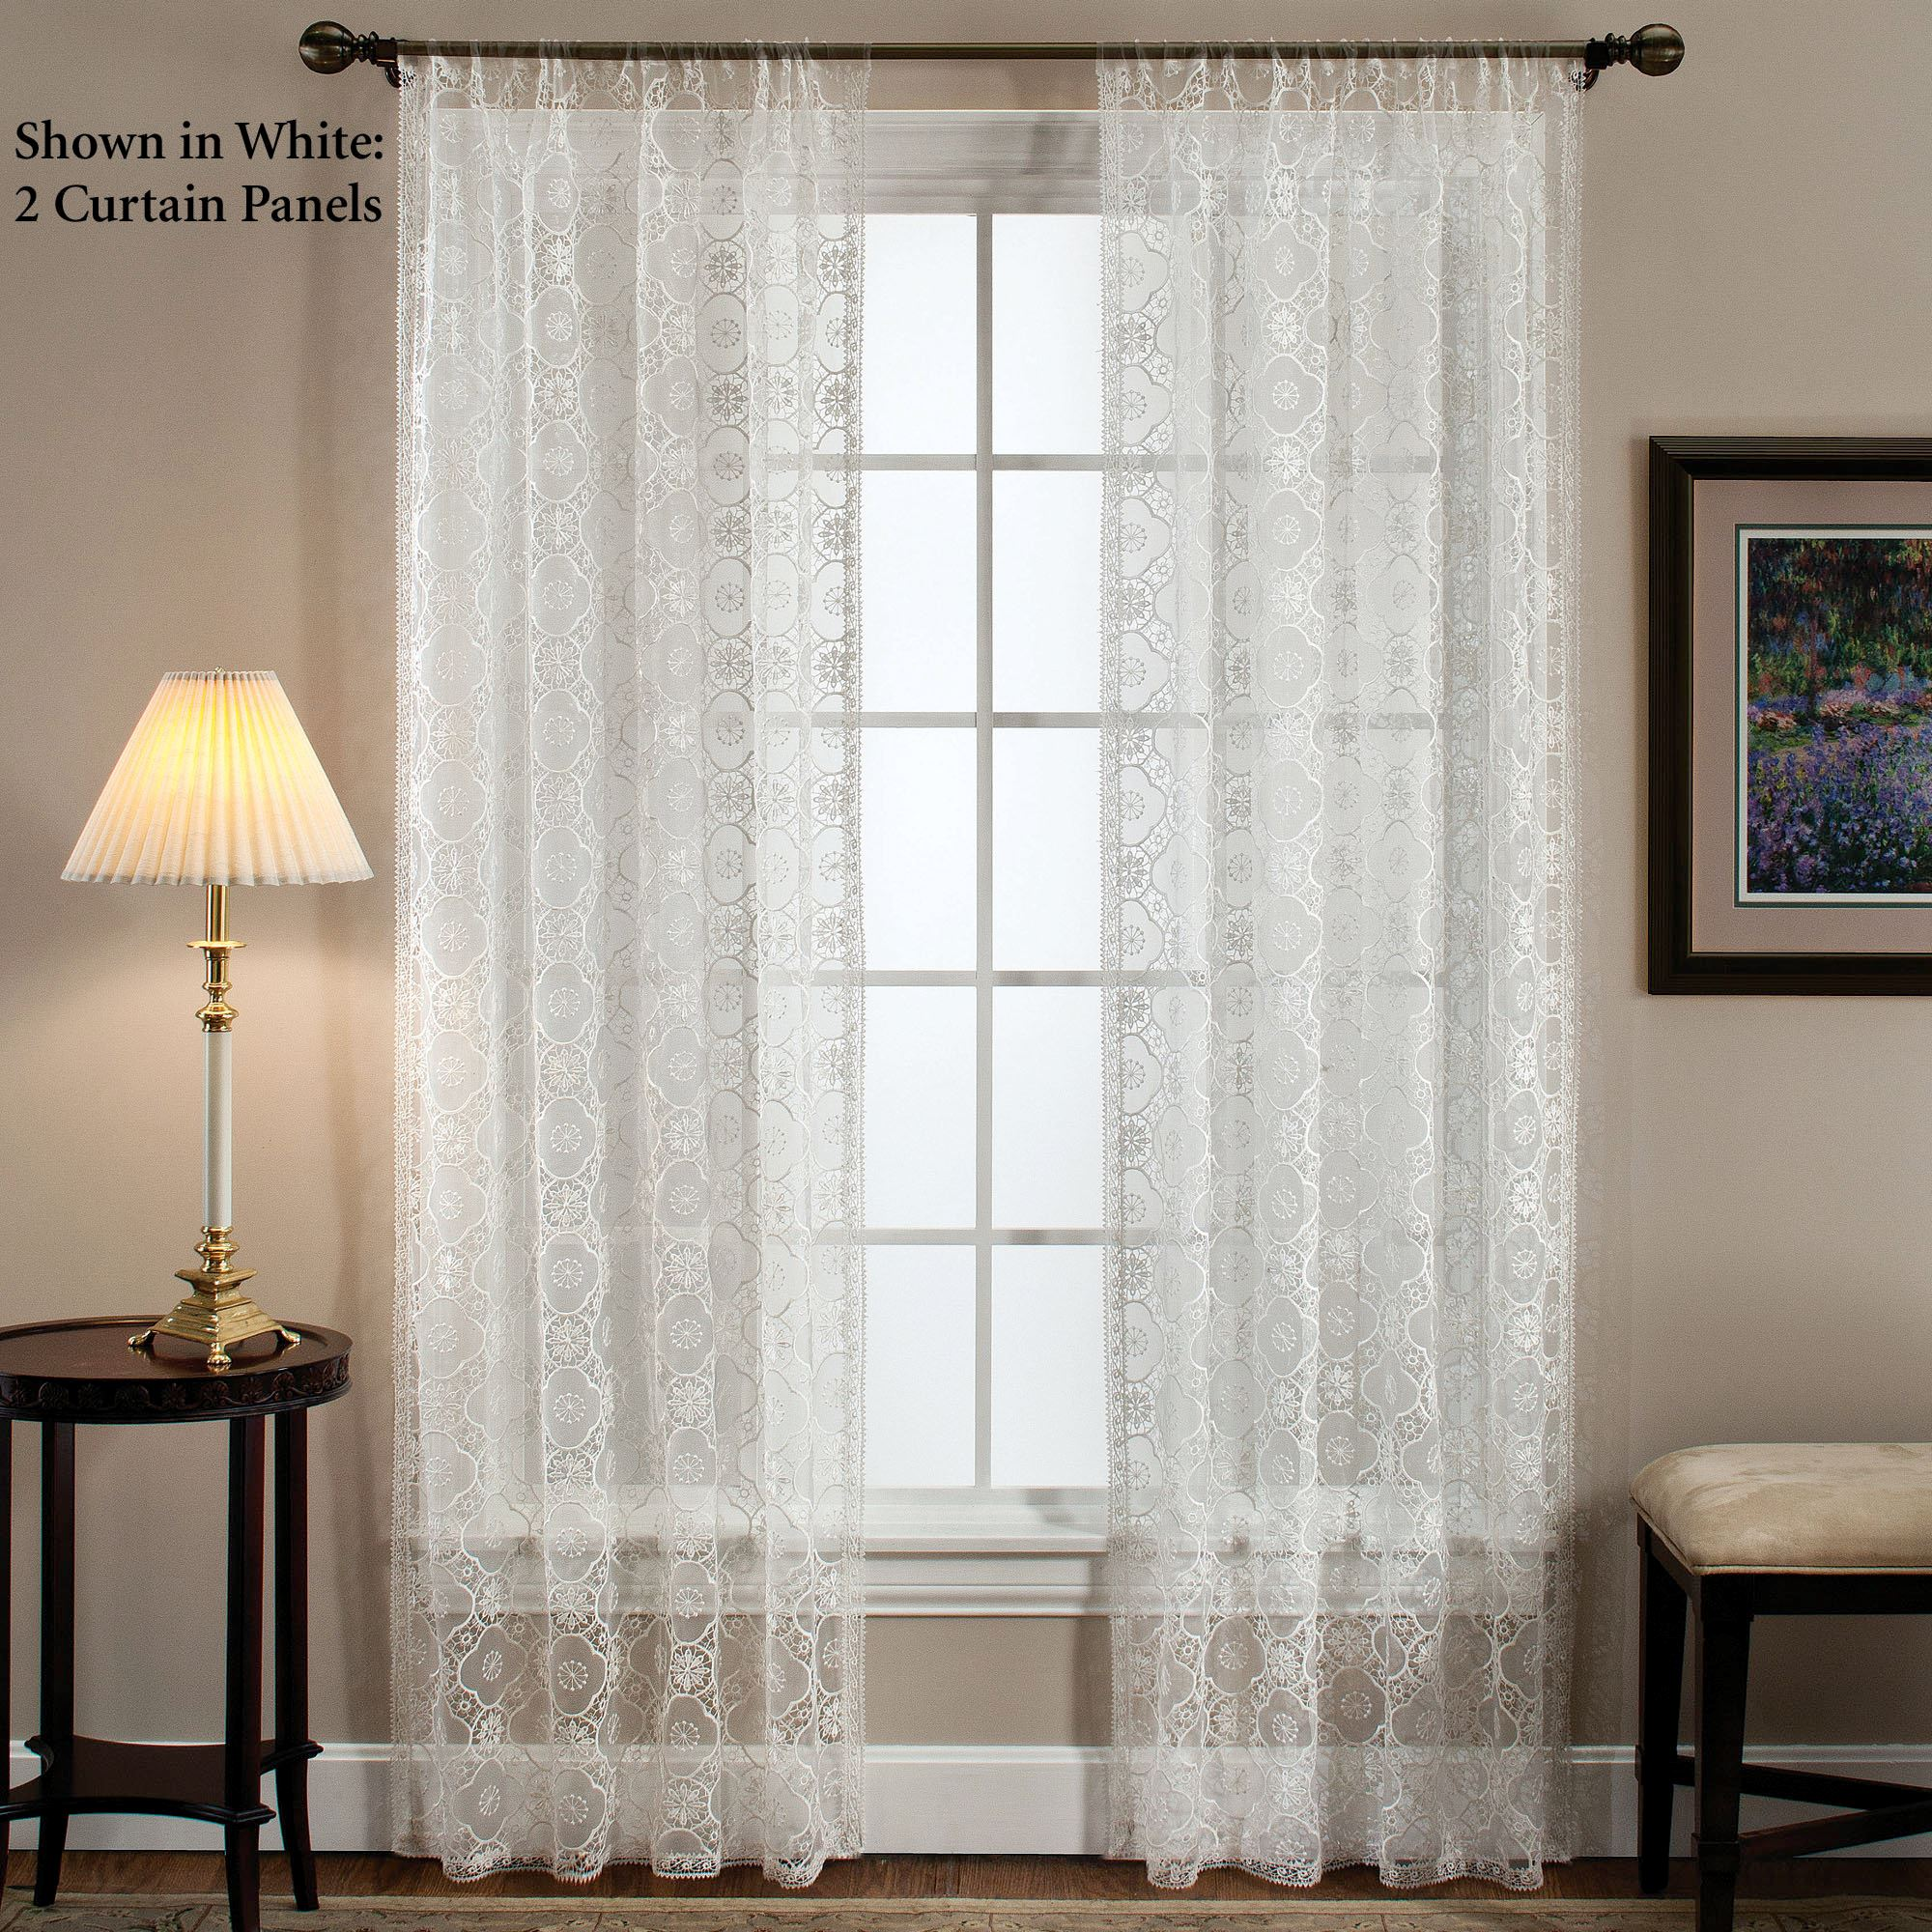 FREE SHIPPING Richmond Tailored Curtain Panel